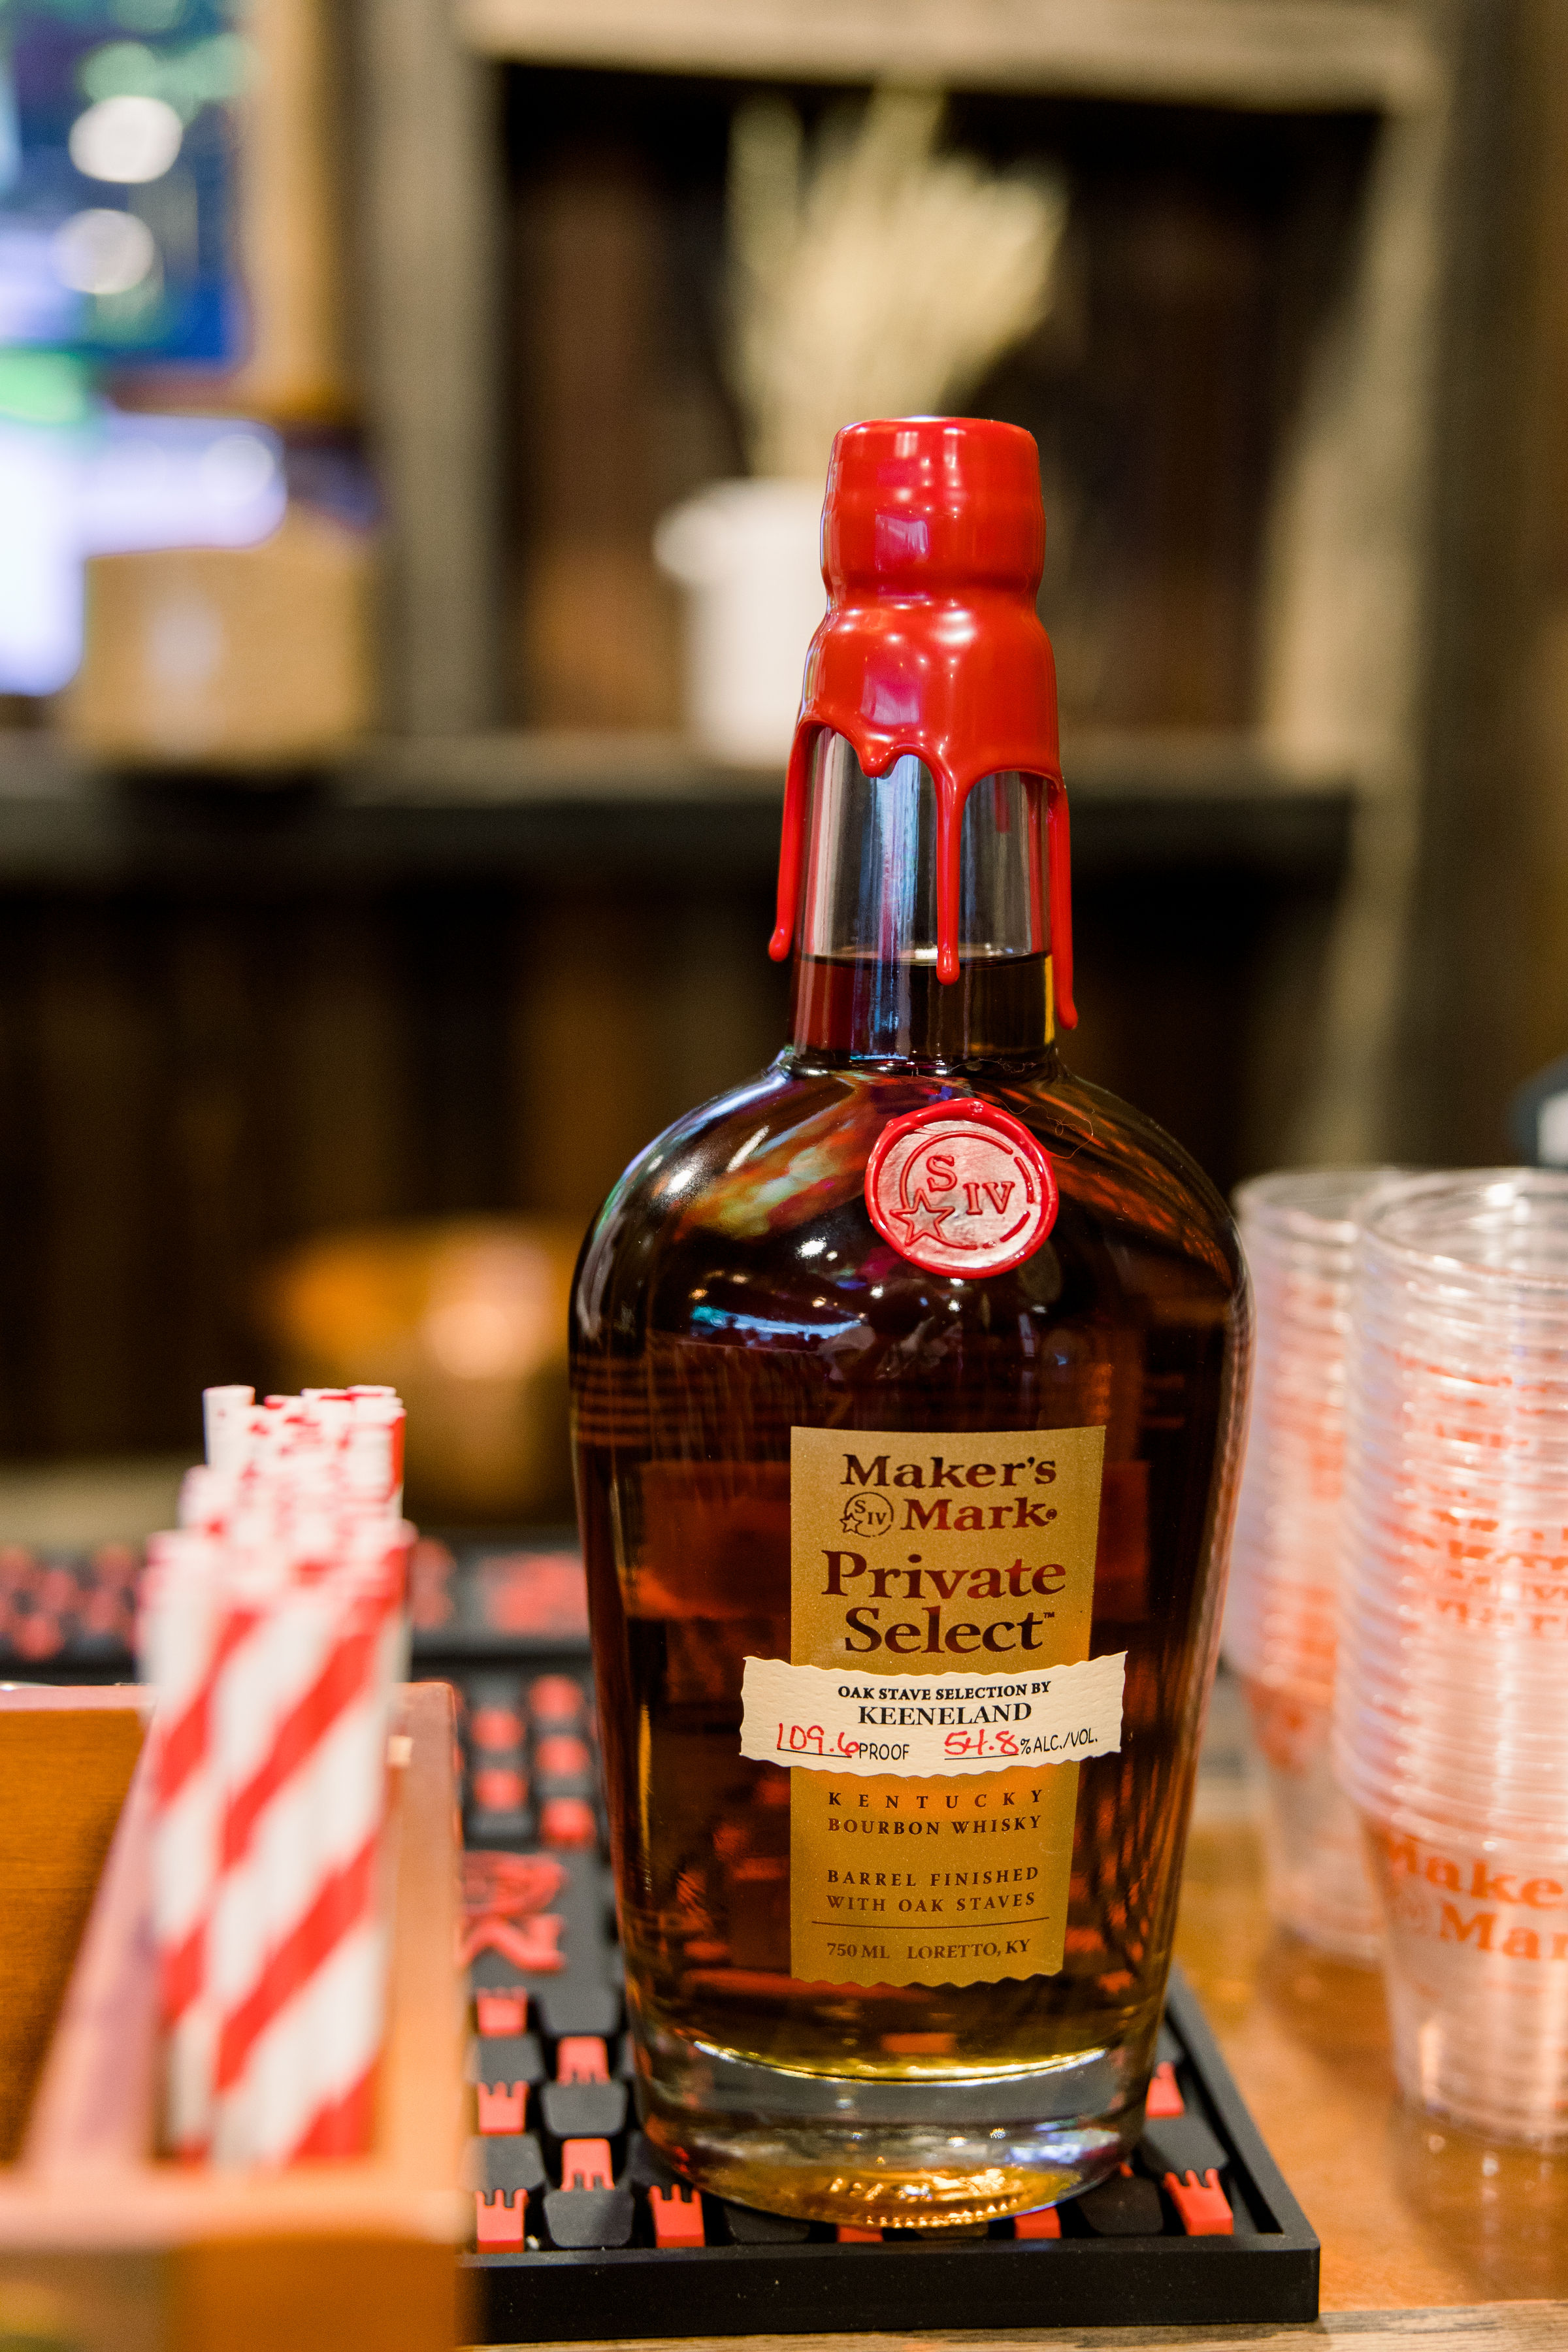 Makers Mark Private Select Bourbon for Derby Day at Keeneland. Photo by The Malicotes